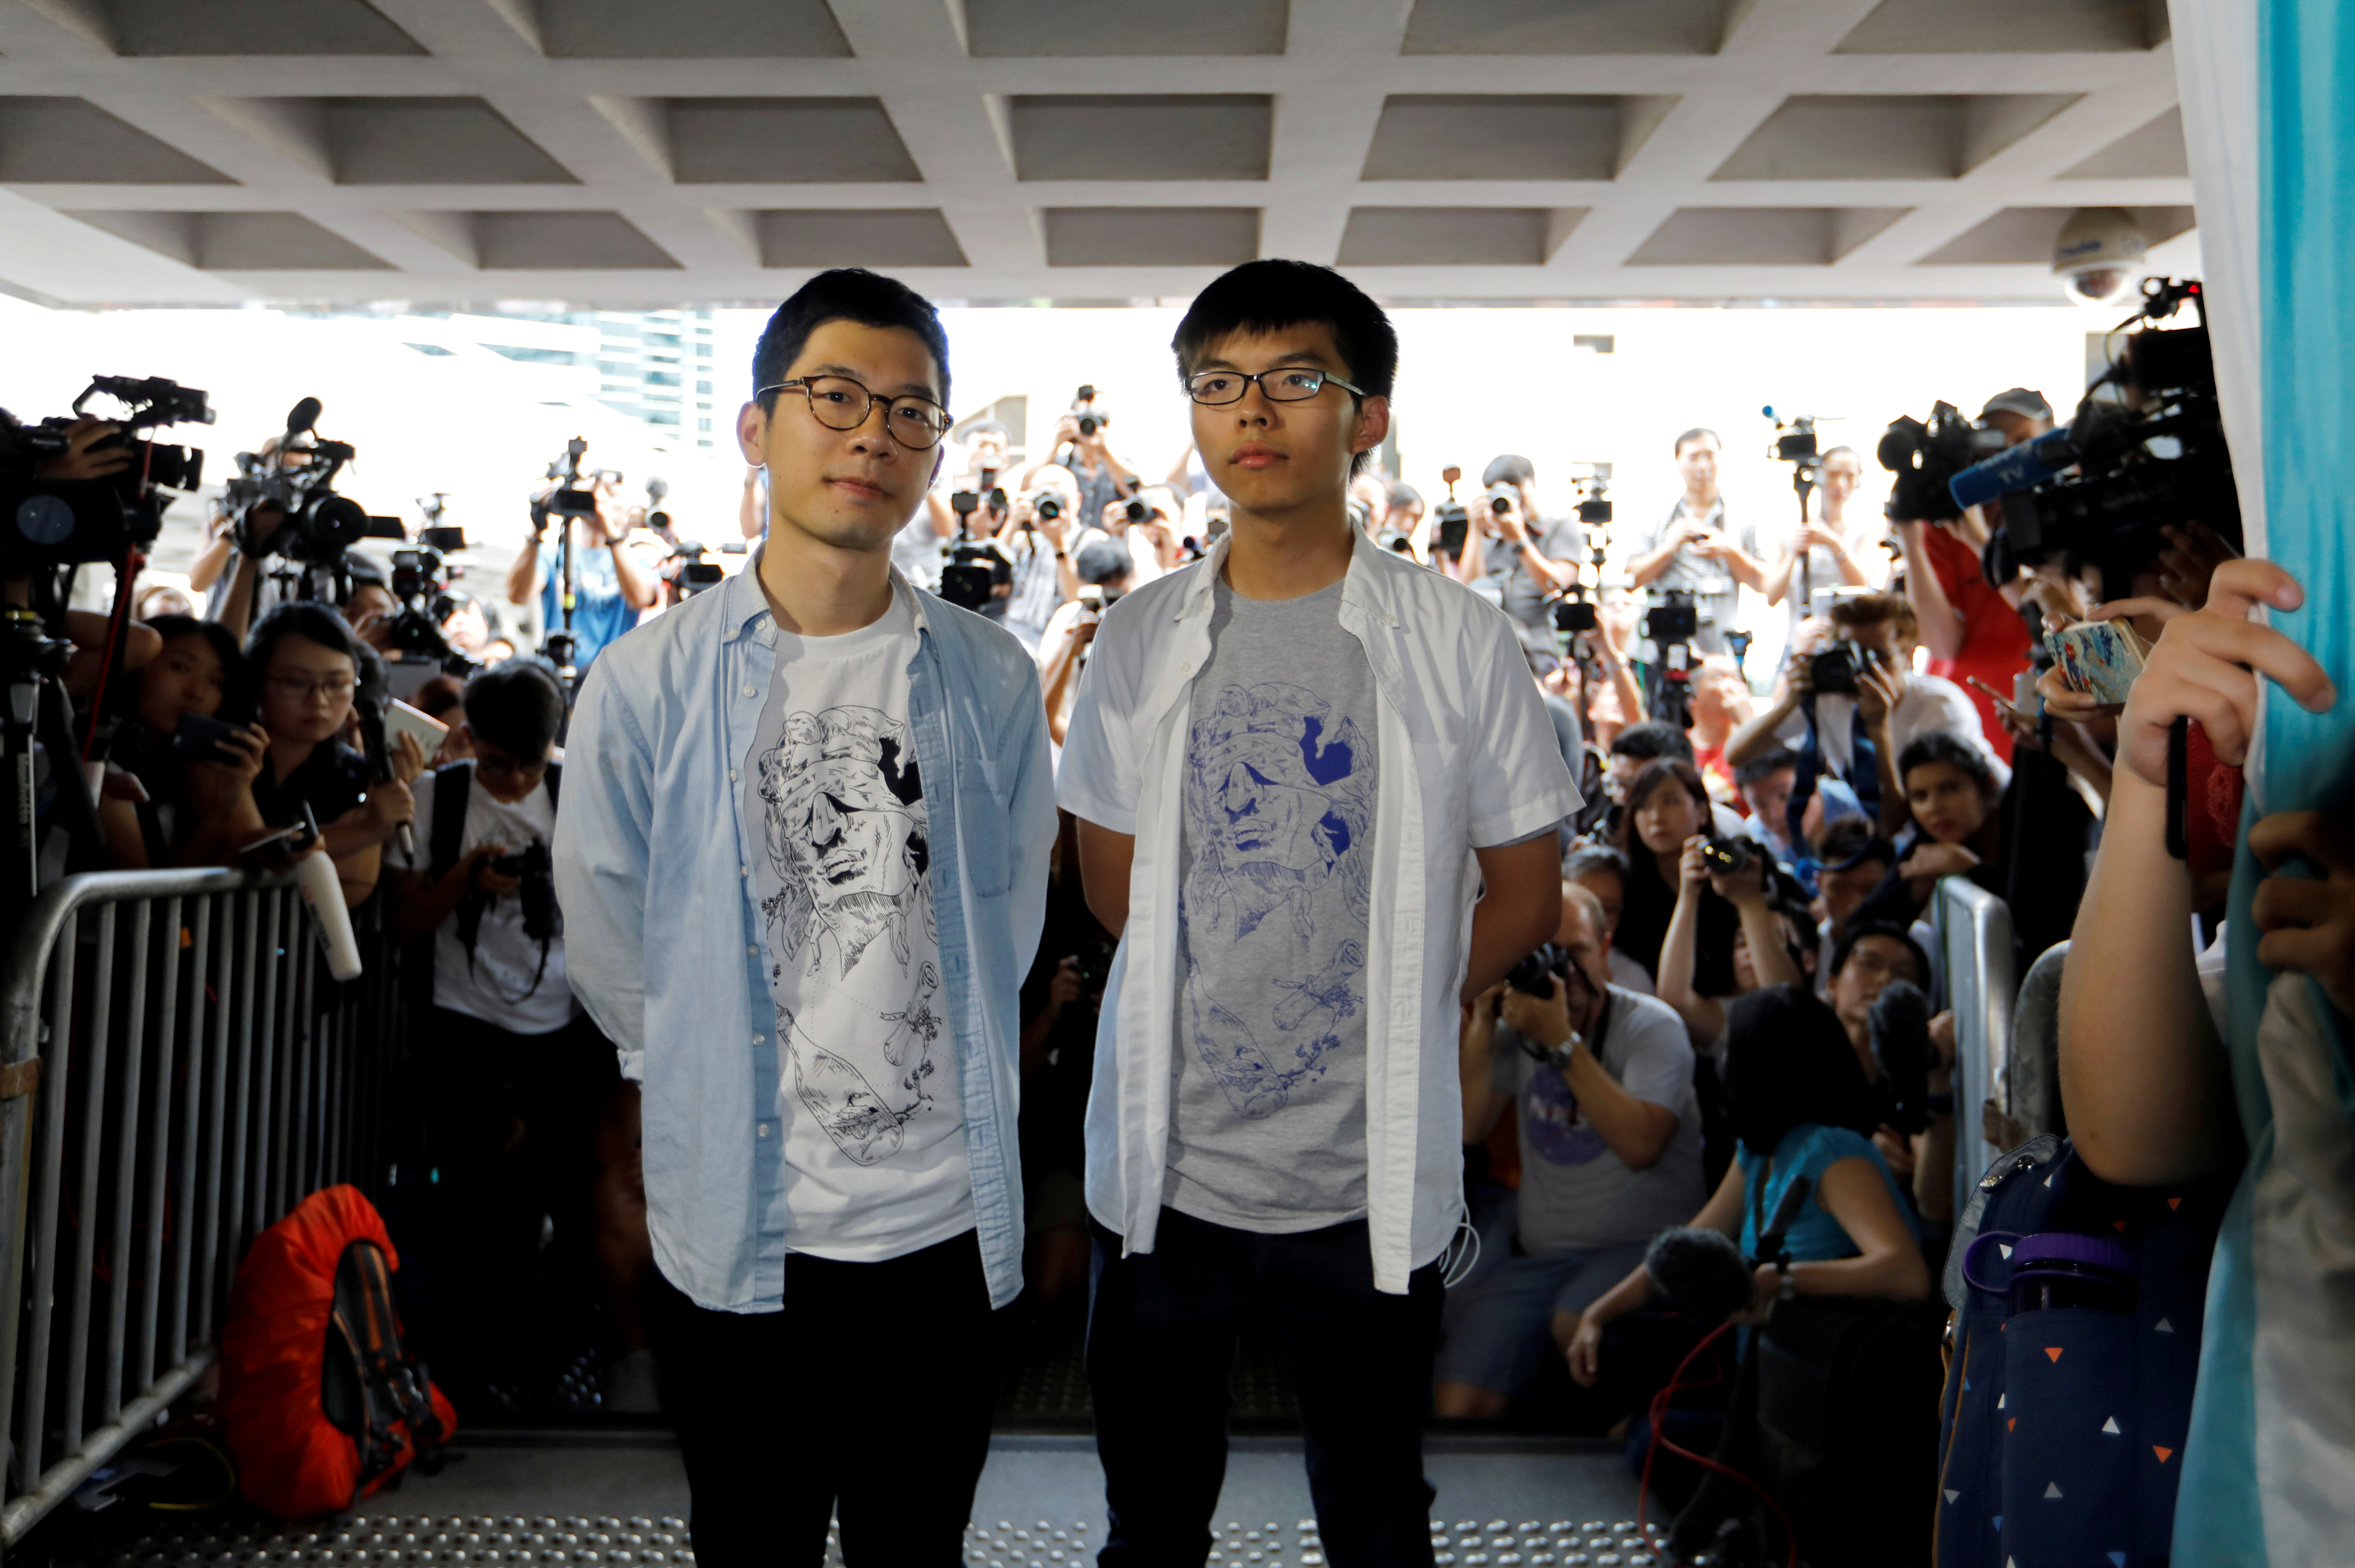 Student leaders Nathan Law and Joshua Wong arrive at the High Court to face verdict on charges relating to the 2014 pro-democracy Umbrella Movement, also known as Occupy Central protests, in Hong Kong, China on August 17, 2017. (REUTERS/Tyrone Siu)